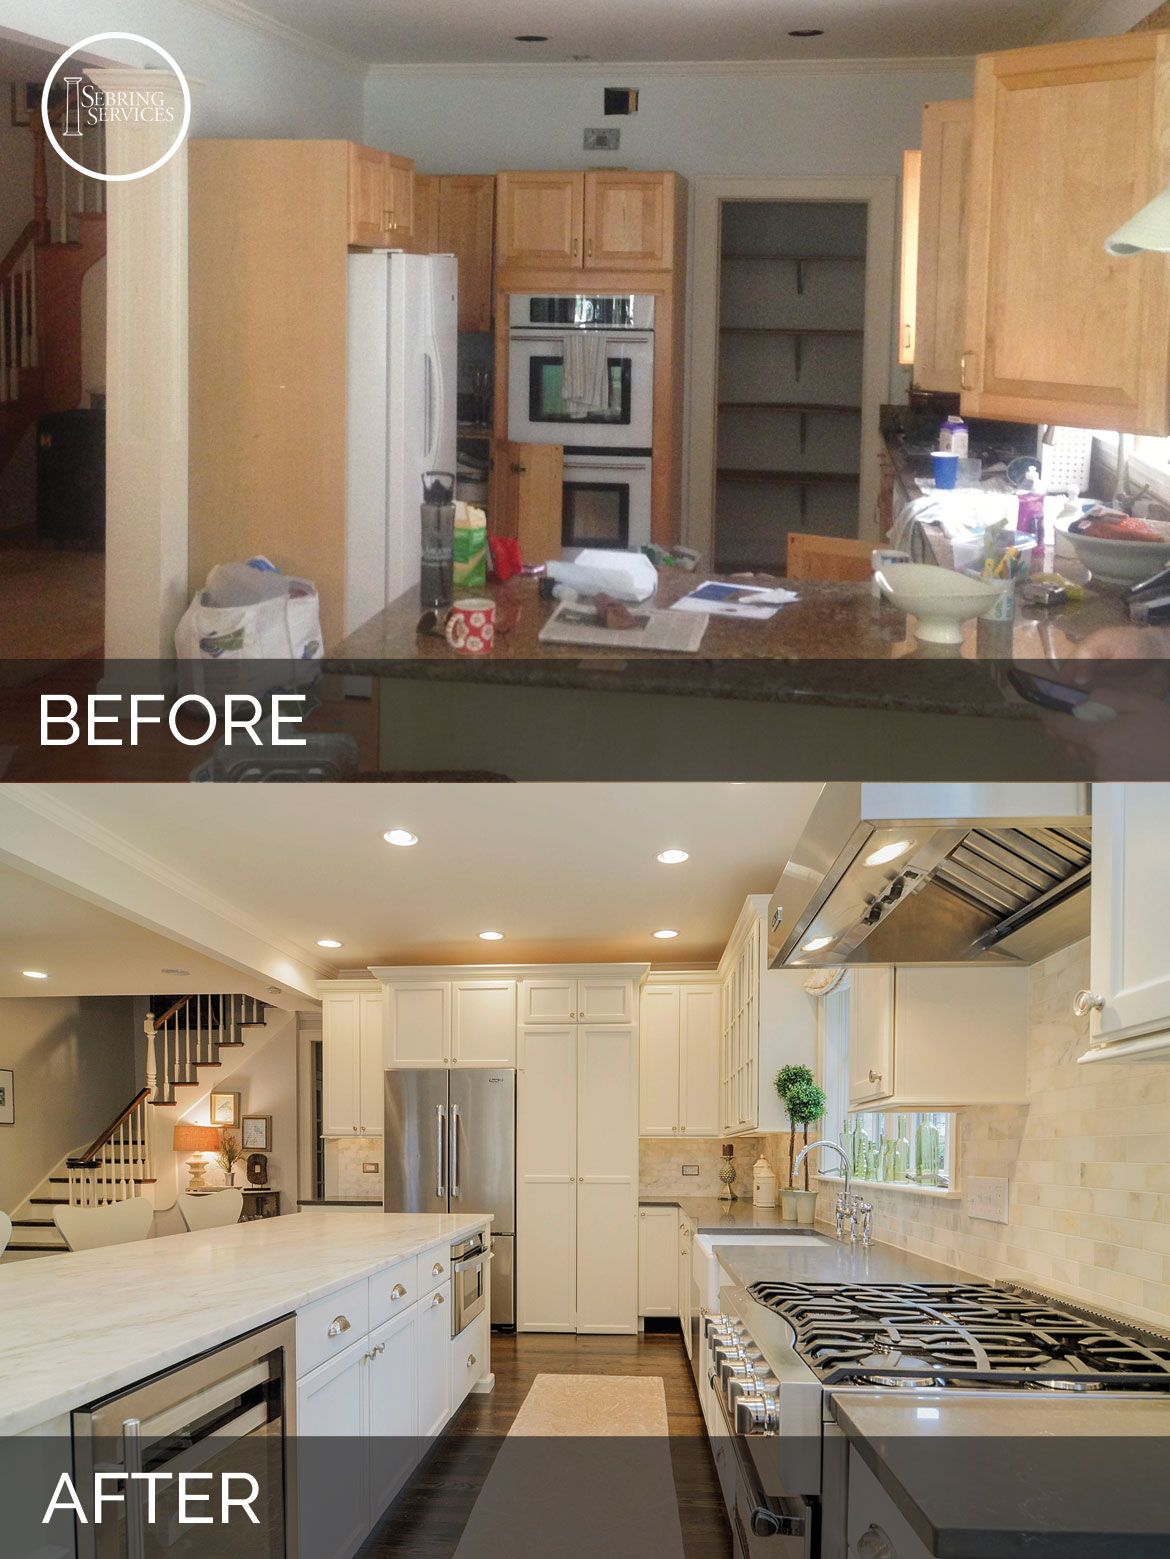 Ben ellen 39 s kitchen before after pictures kitchens for Kitchen renovation styles